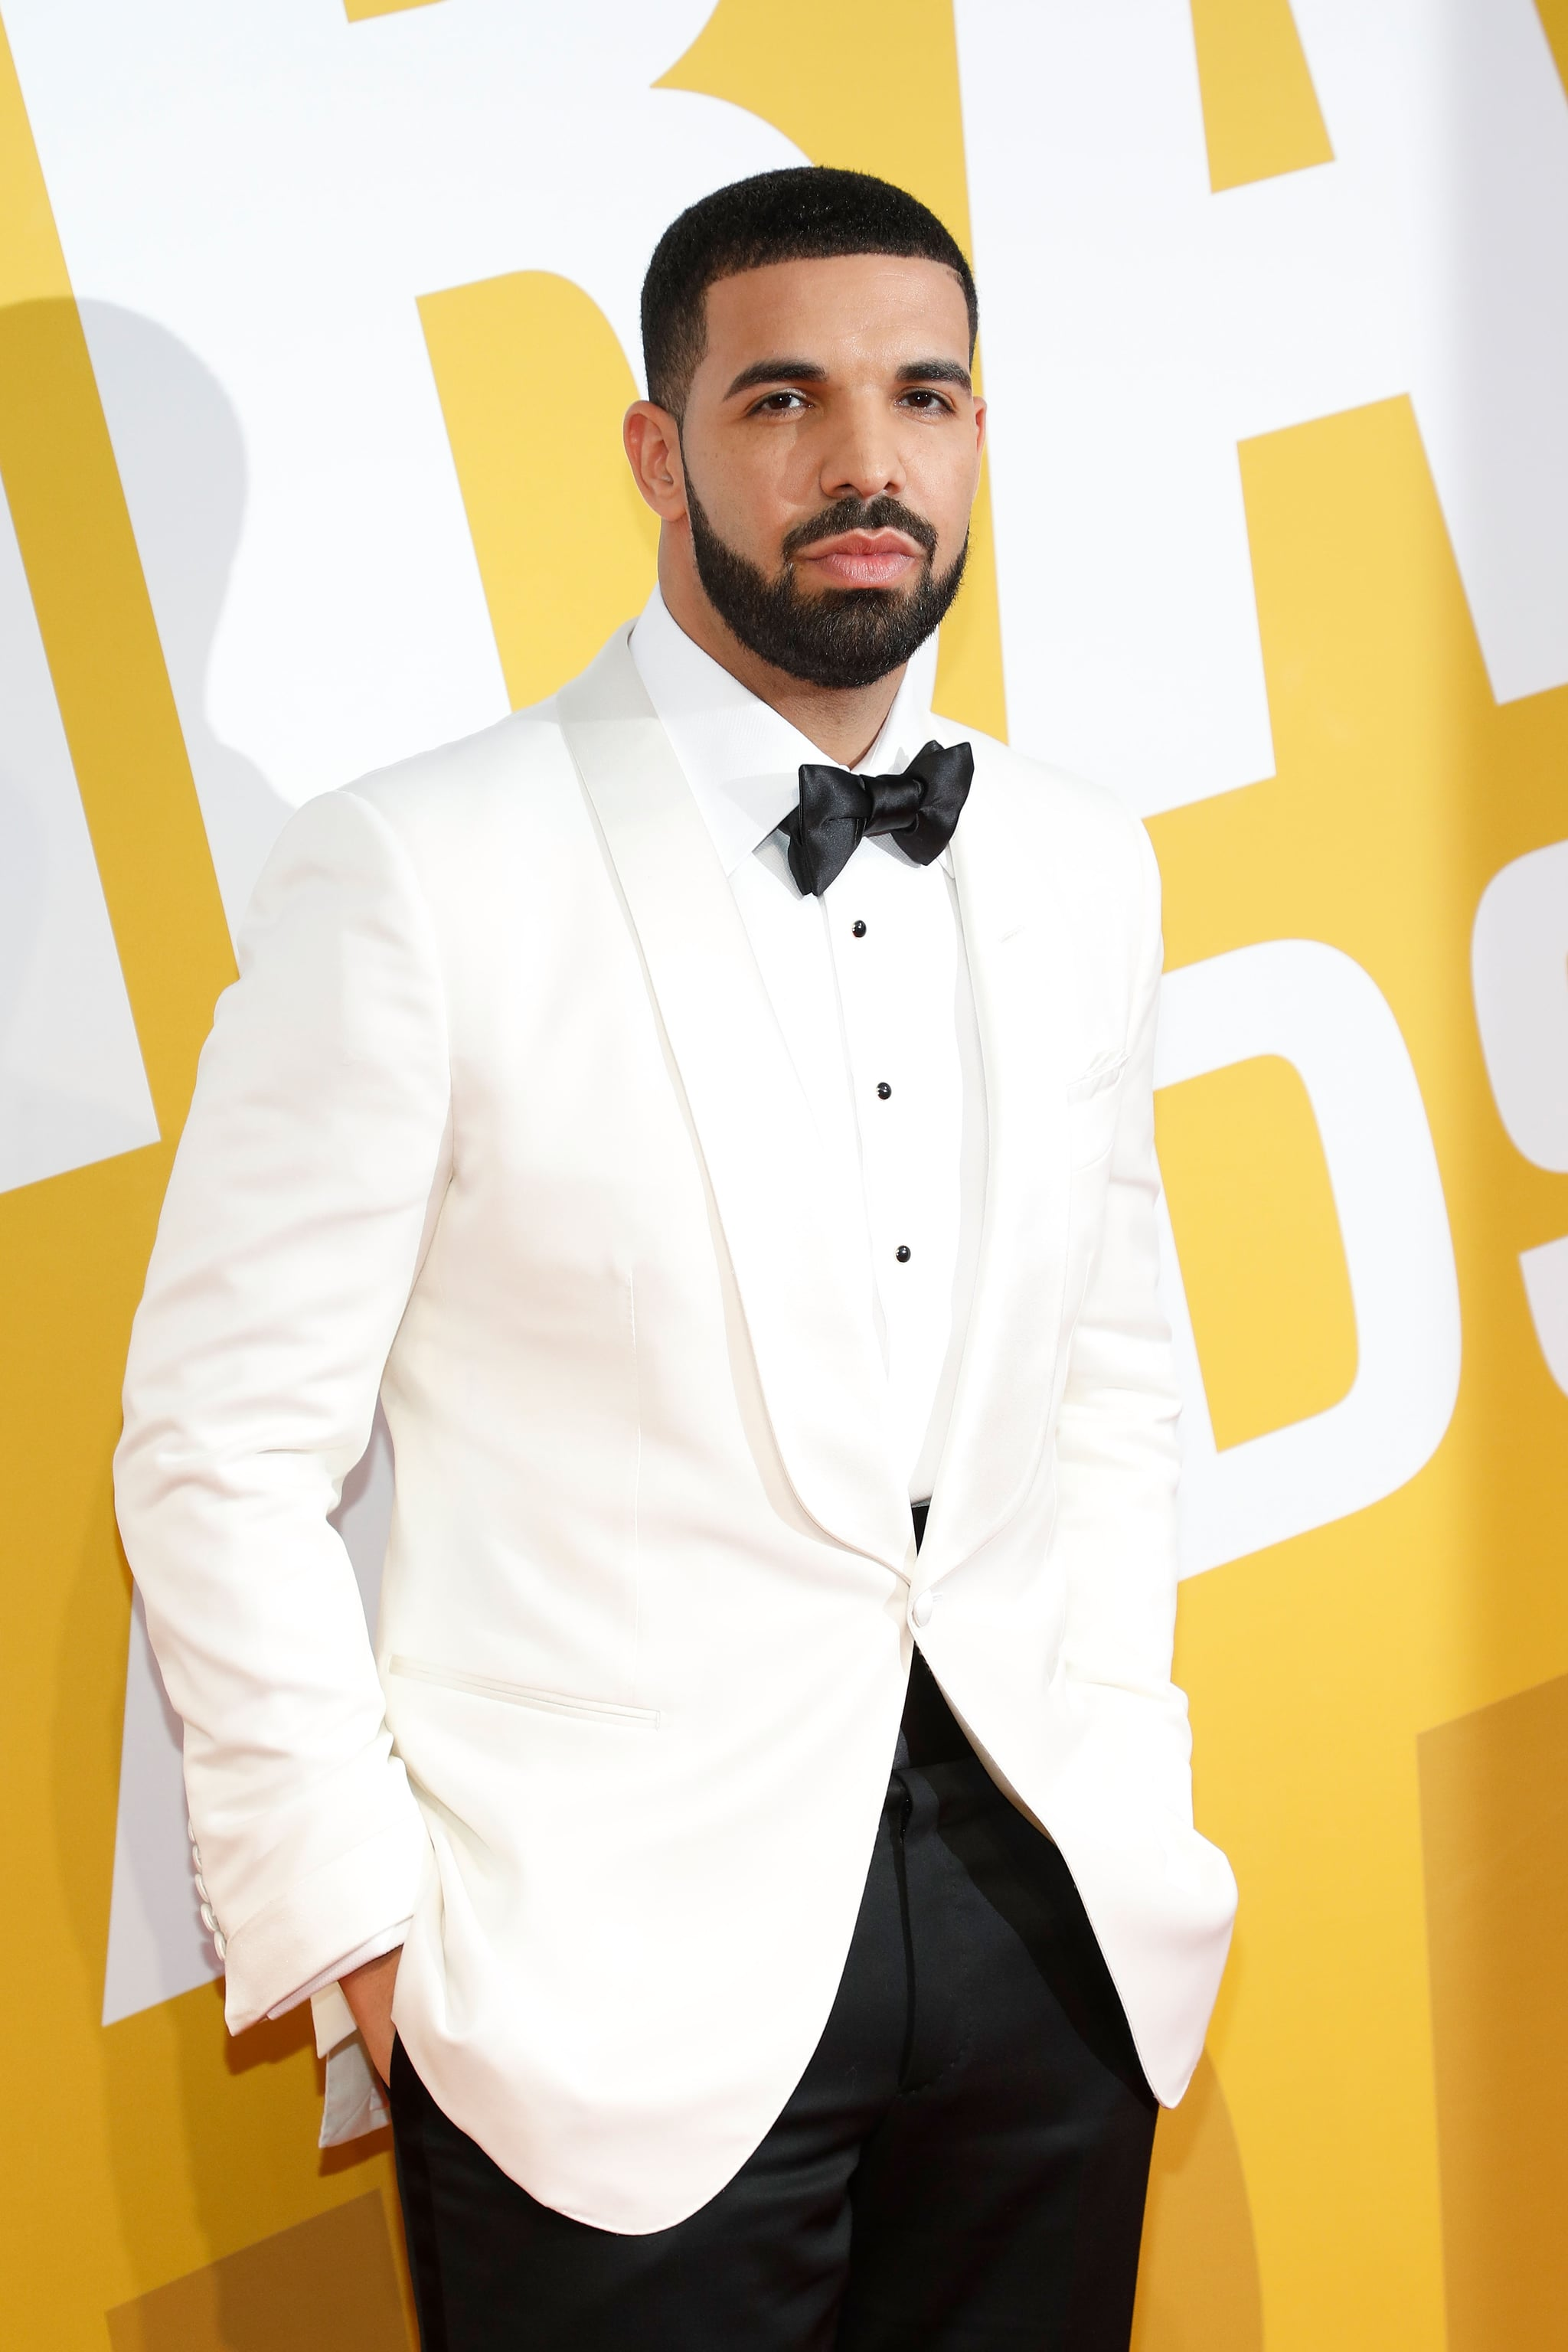 NEW YORK, NY - JUNE 26:  Drake attends the 2017 NBA Awards at Basketball City - Pier 36 - South Street on June 26, 2017 in New York City.  (Photo by Taylor Hill/FilmMagic)